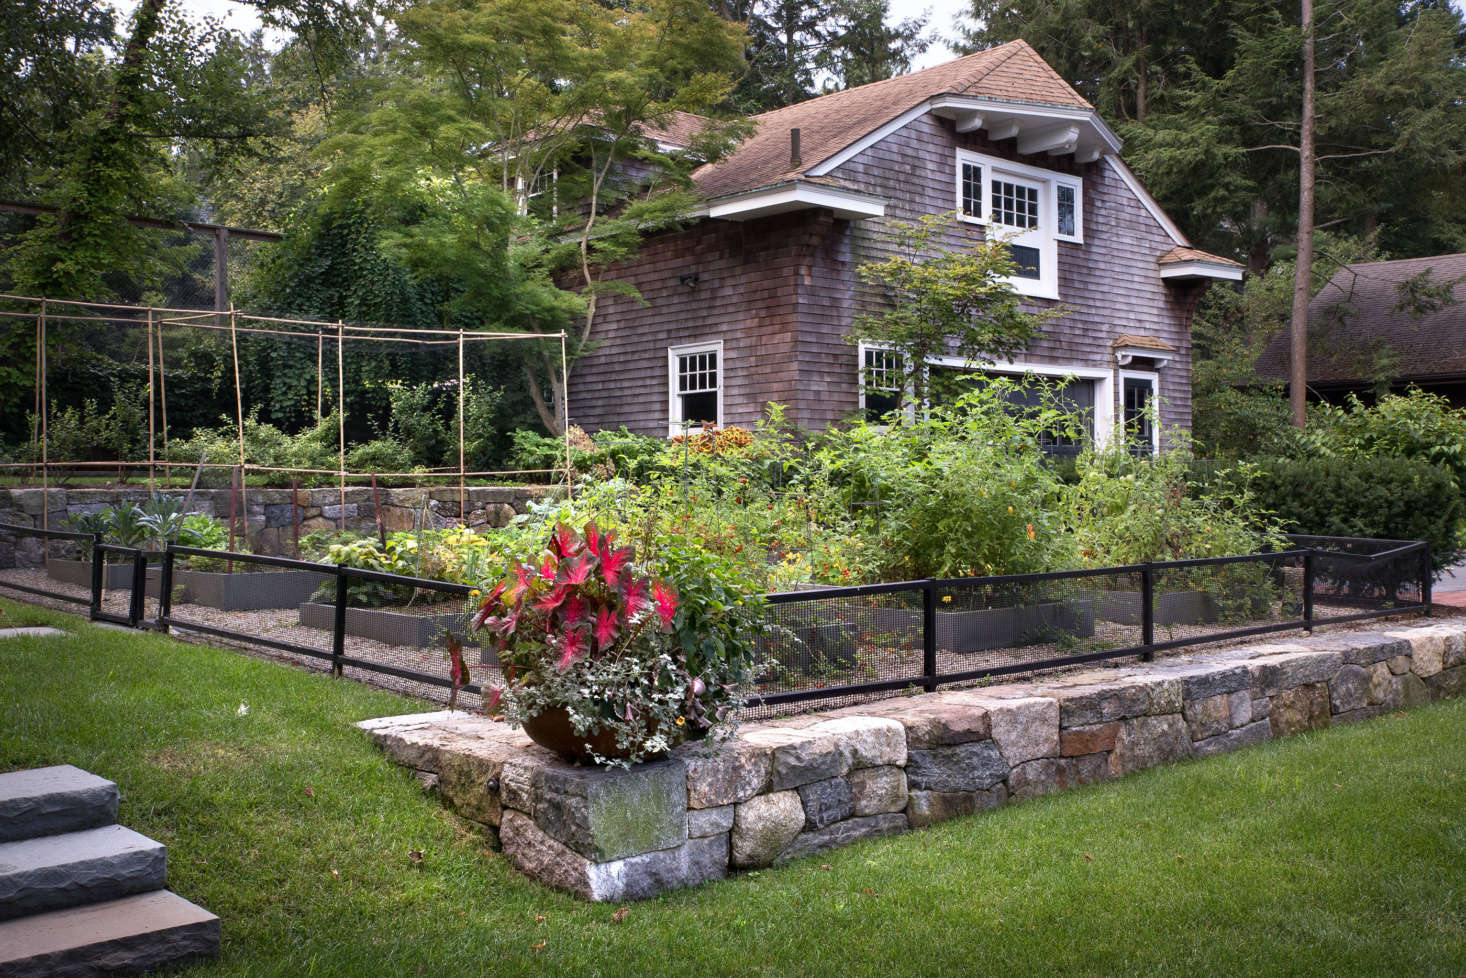 Disappearing into the level above, the stone walls both define and seamlessly blend the distinct parts of the yard.